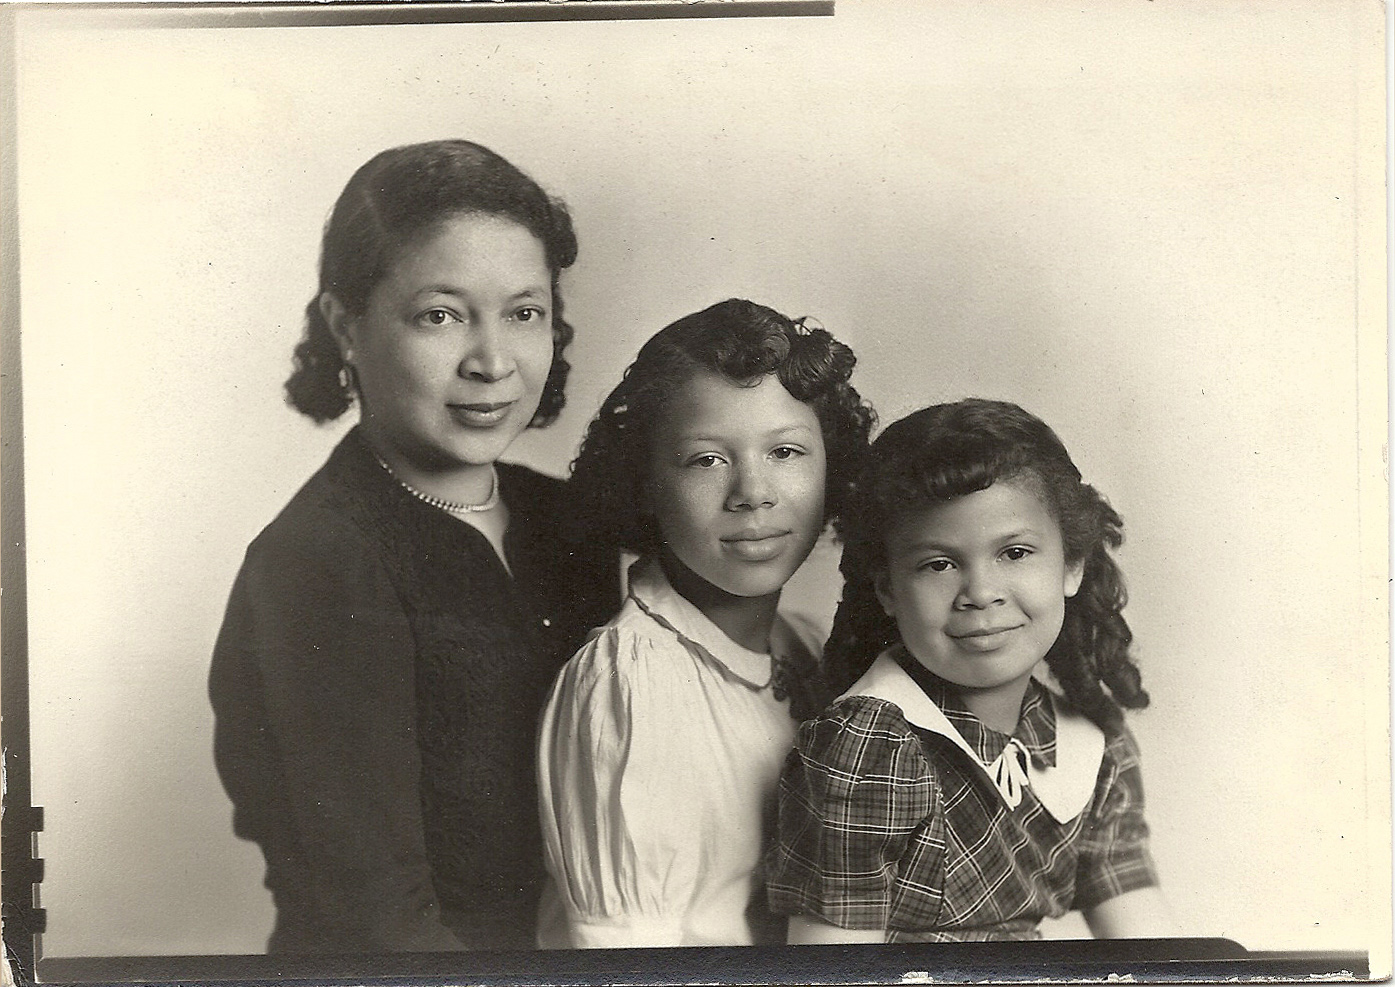 LA BONNE VIVANTE GALLERY OF ANTIQUE AFRICAN AMERICAN PHOTOS 2-28-10